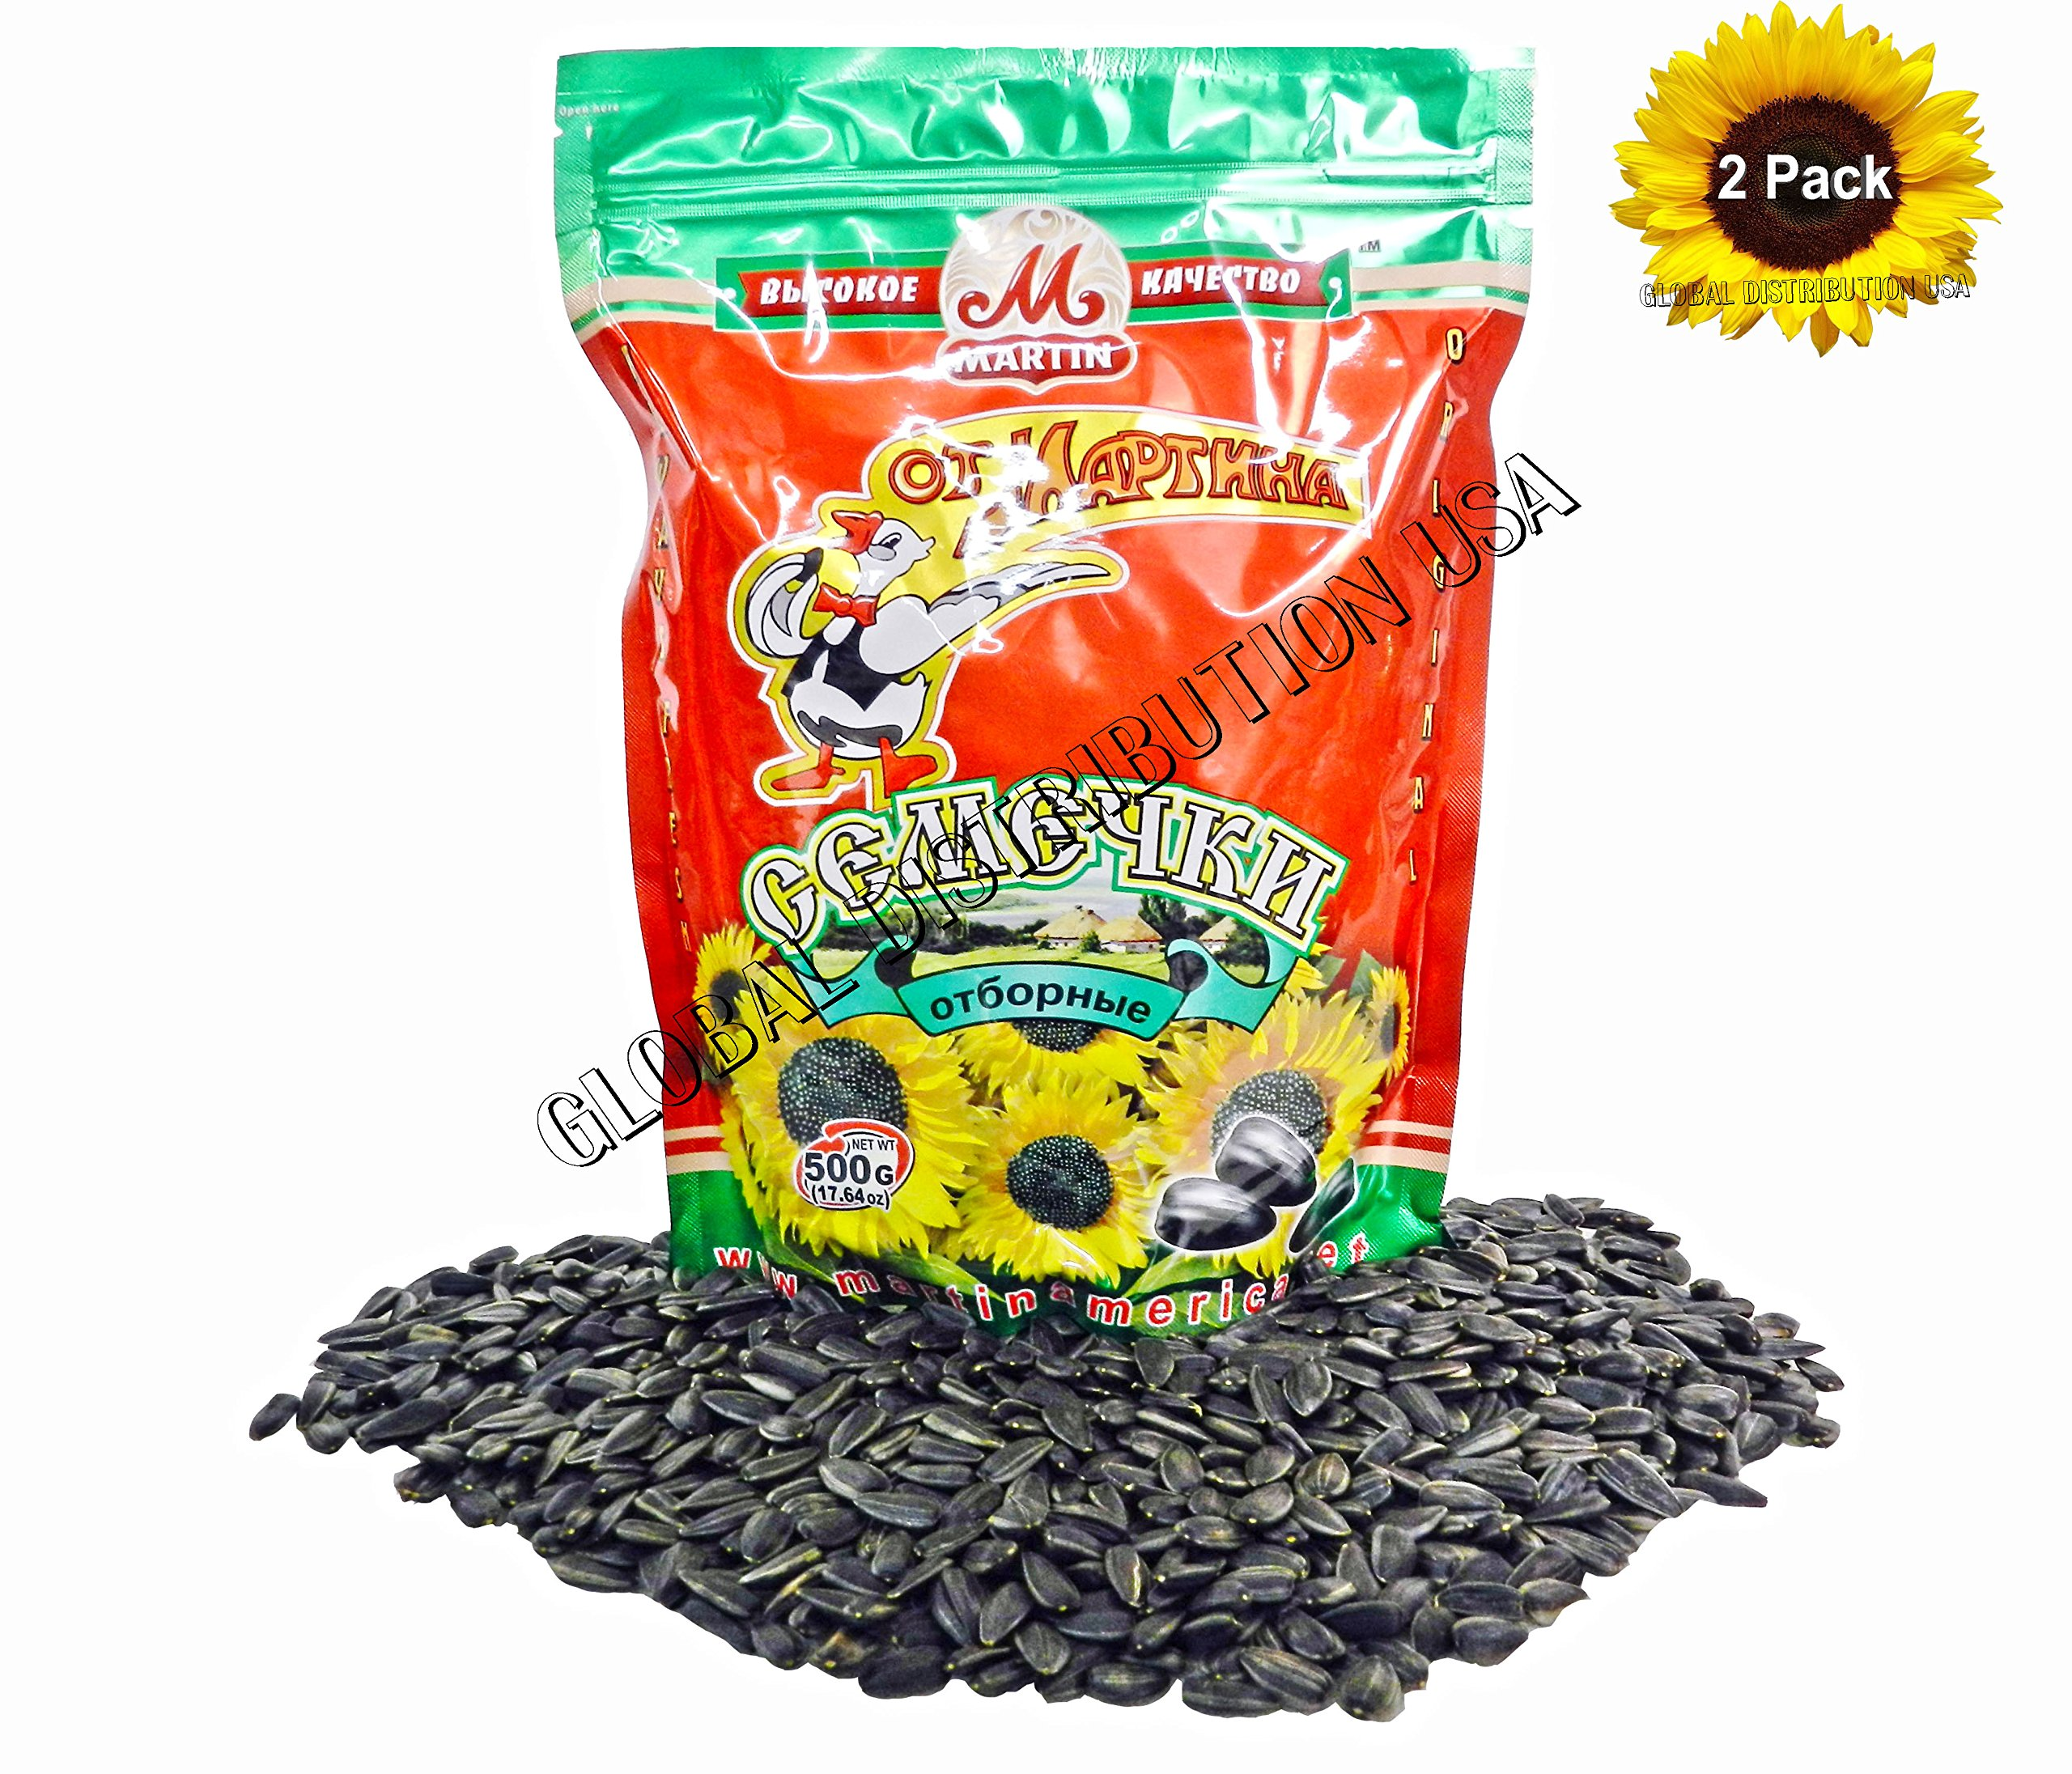 Premium Roasted Sunflower Seeds by Mr.Martin (Ot Martina) Unsalted Non-GMO 500G Pack of 2